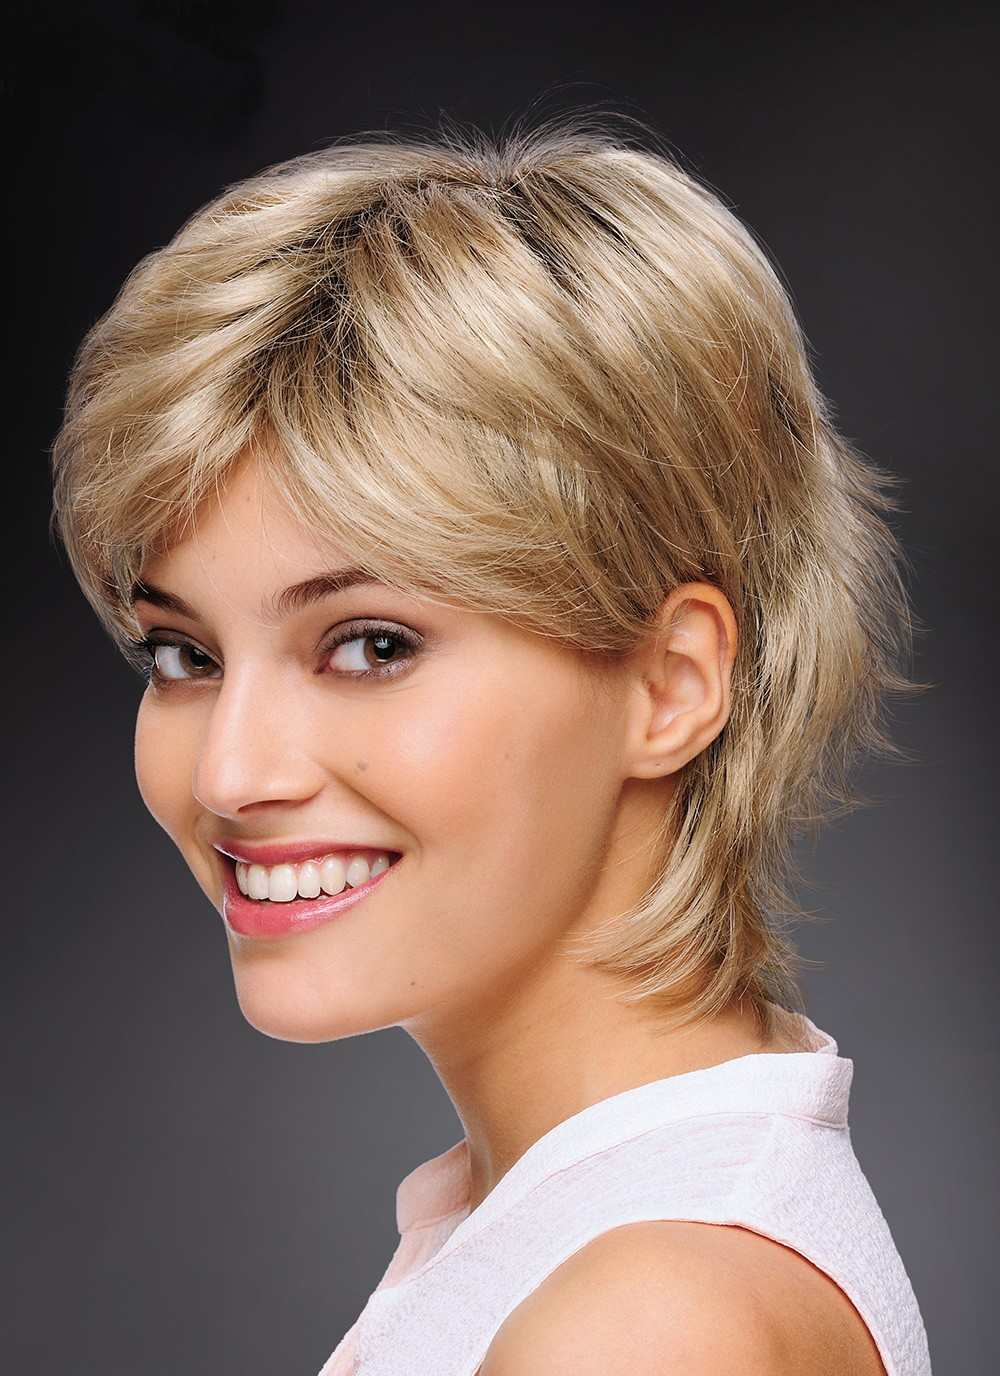 Fashionable Short Cut Blonde Synthetic Hair Ladies Wigs